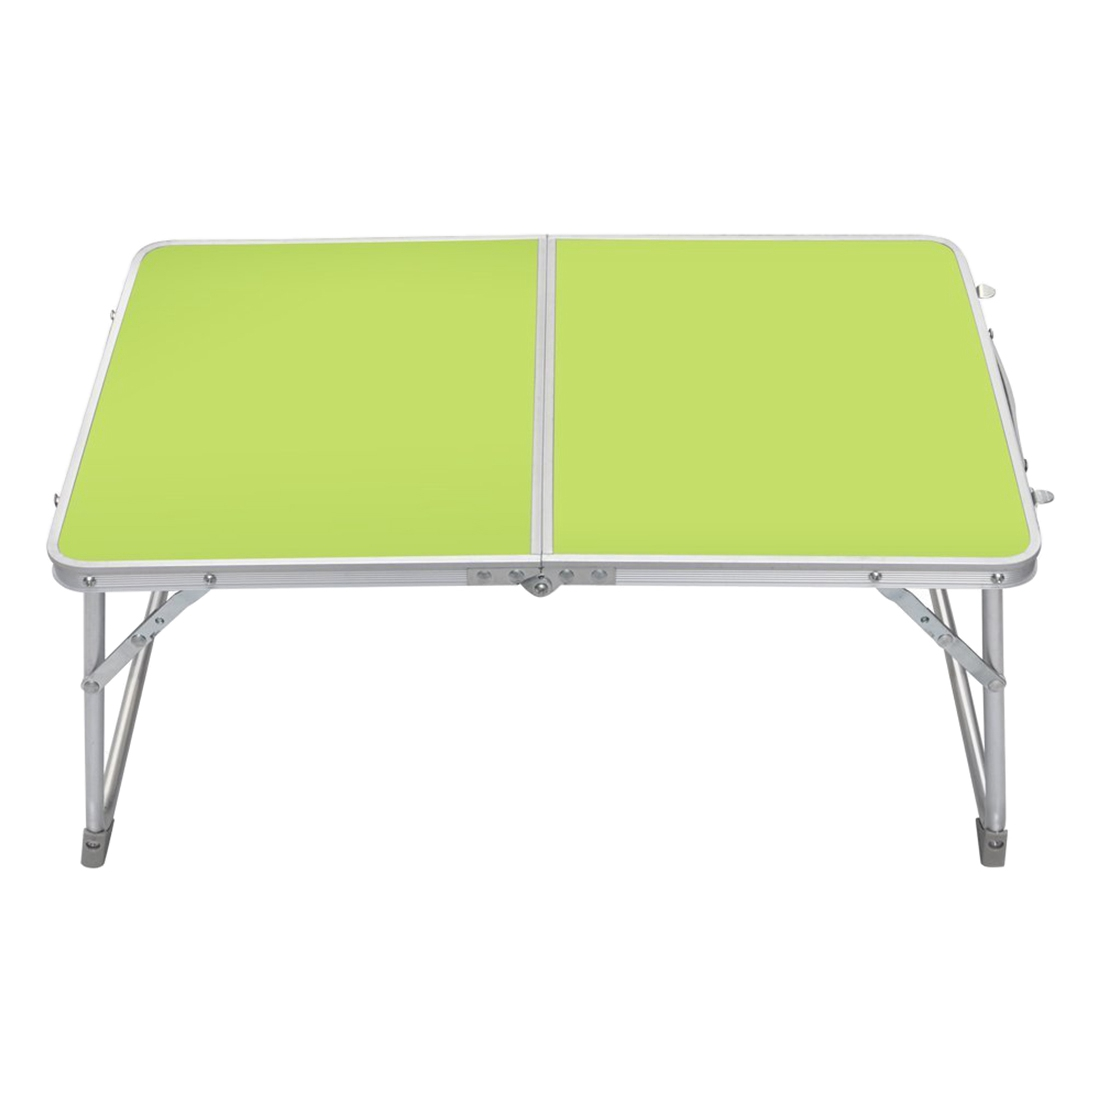 Small 62x41x28cm/24.4x16.1x11 PC Laptop Table Bed Desk Camping Picnic BBQ (Green)Small 62x41x28cm/24.4x16.1x11 PC Laptop Table Bed Desk Camping Picnic BBQ (Green)